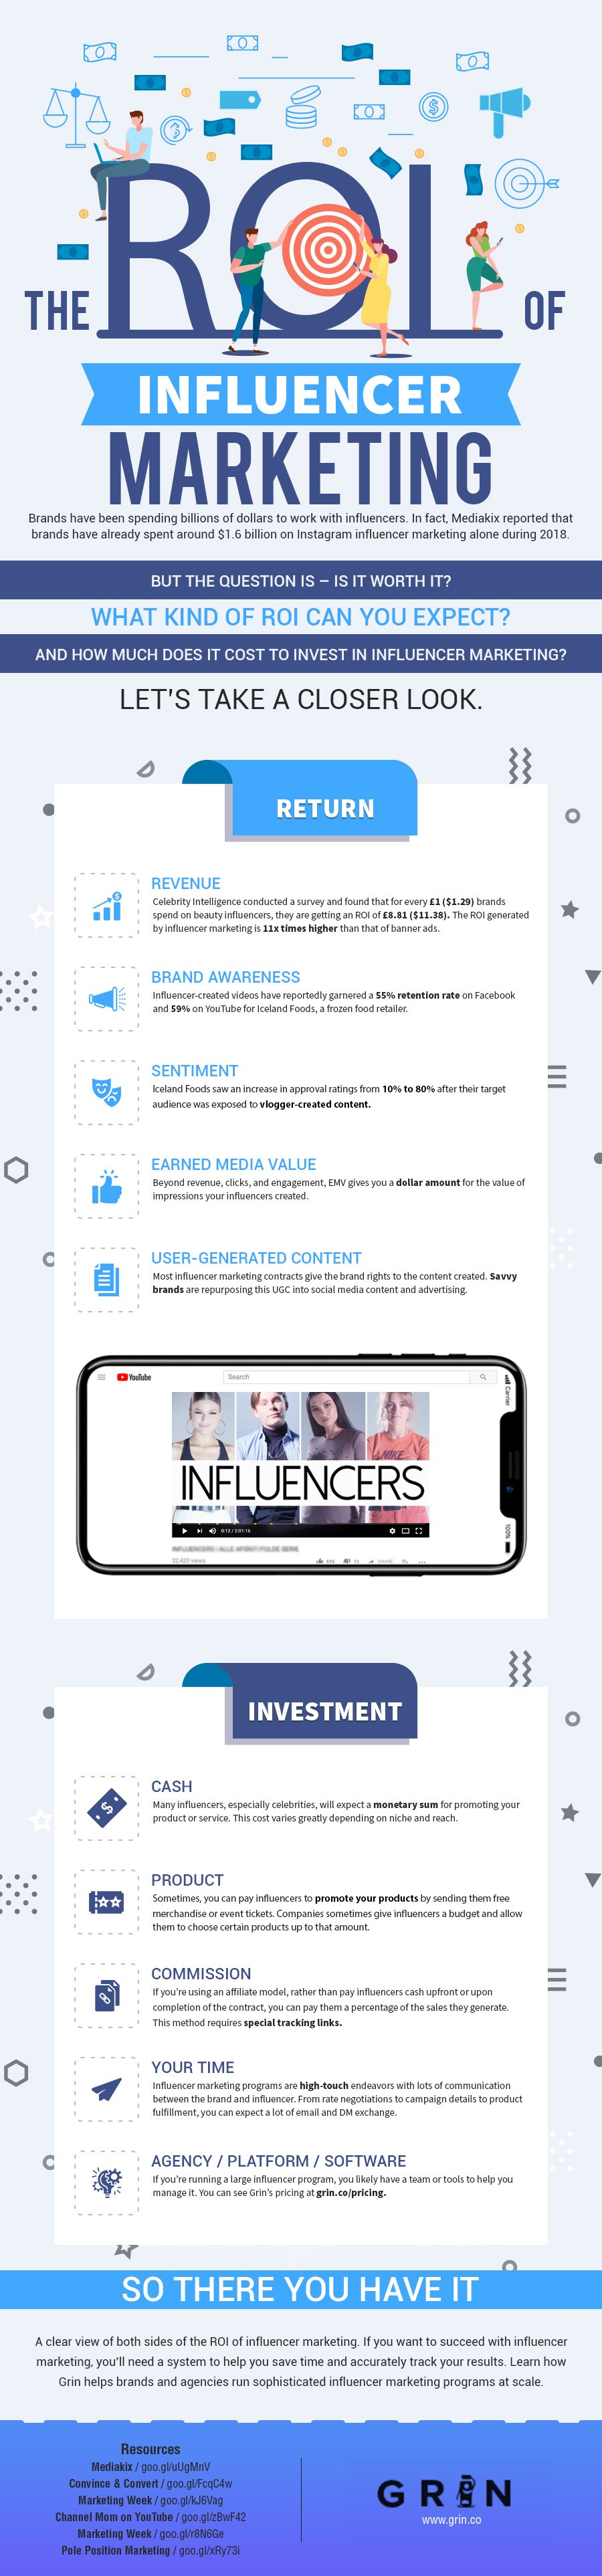 ROI of Influencer Marketing - infographic